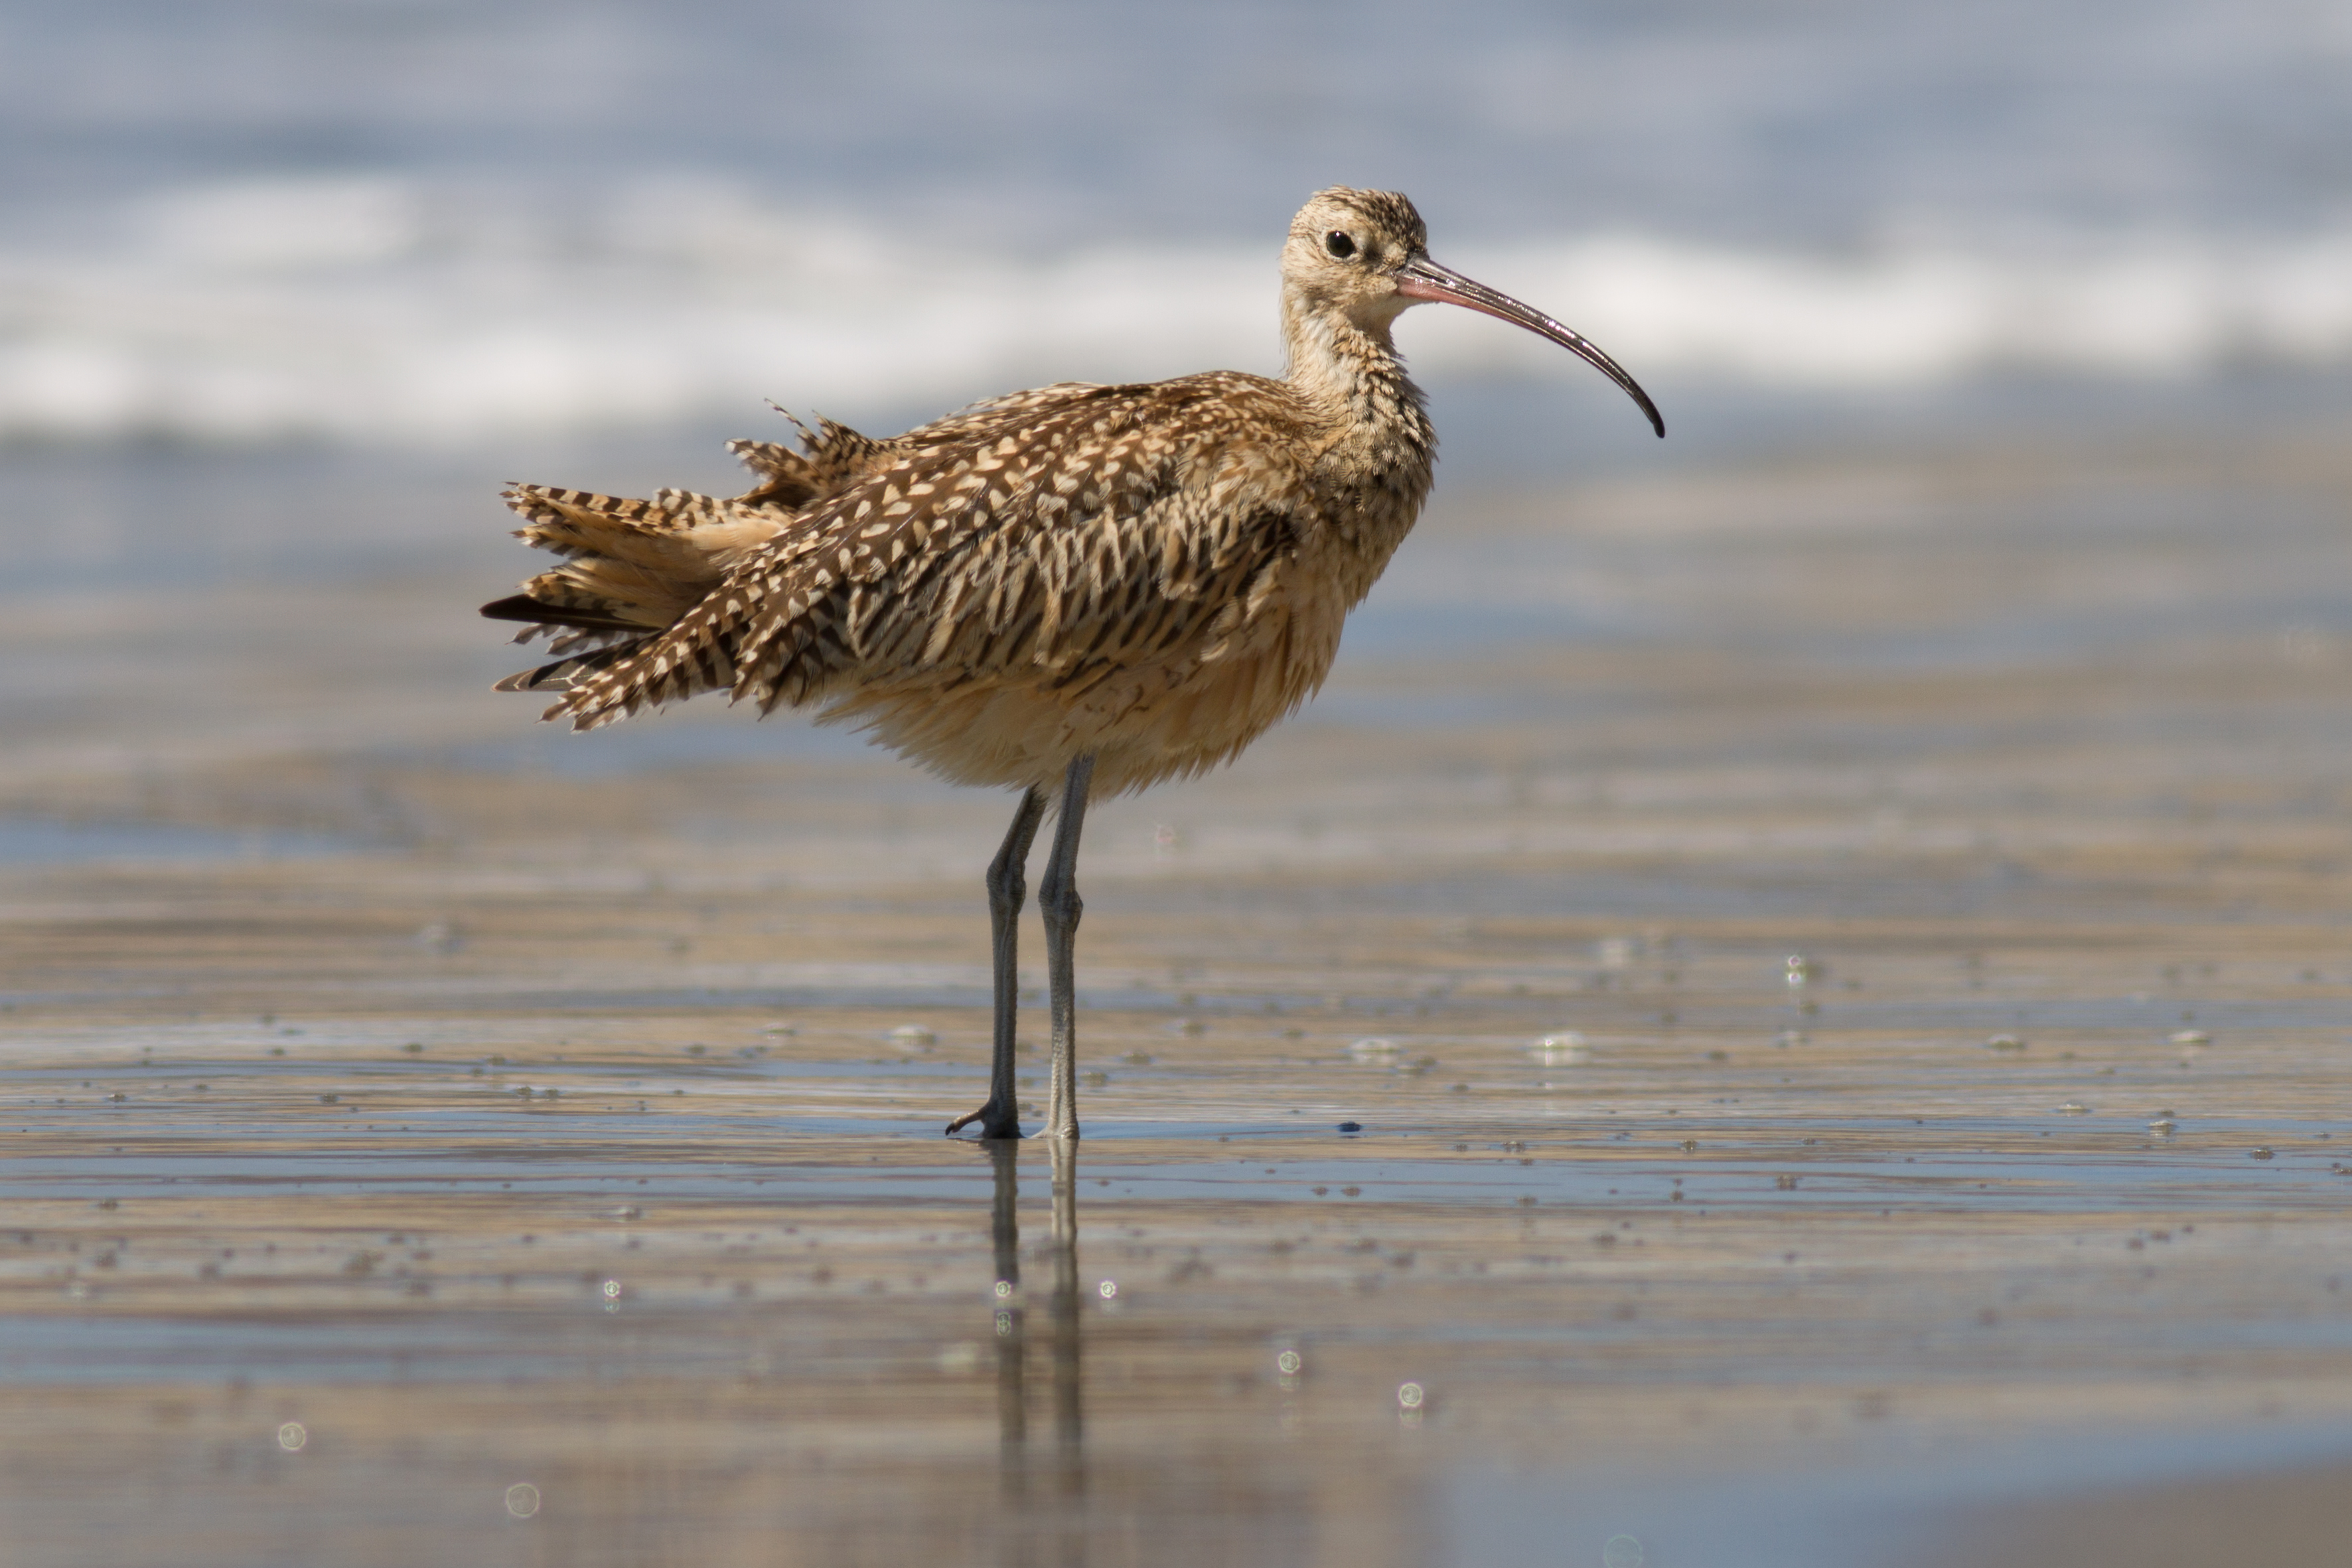 Long-billed curlew - Wikipedia